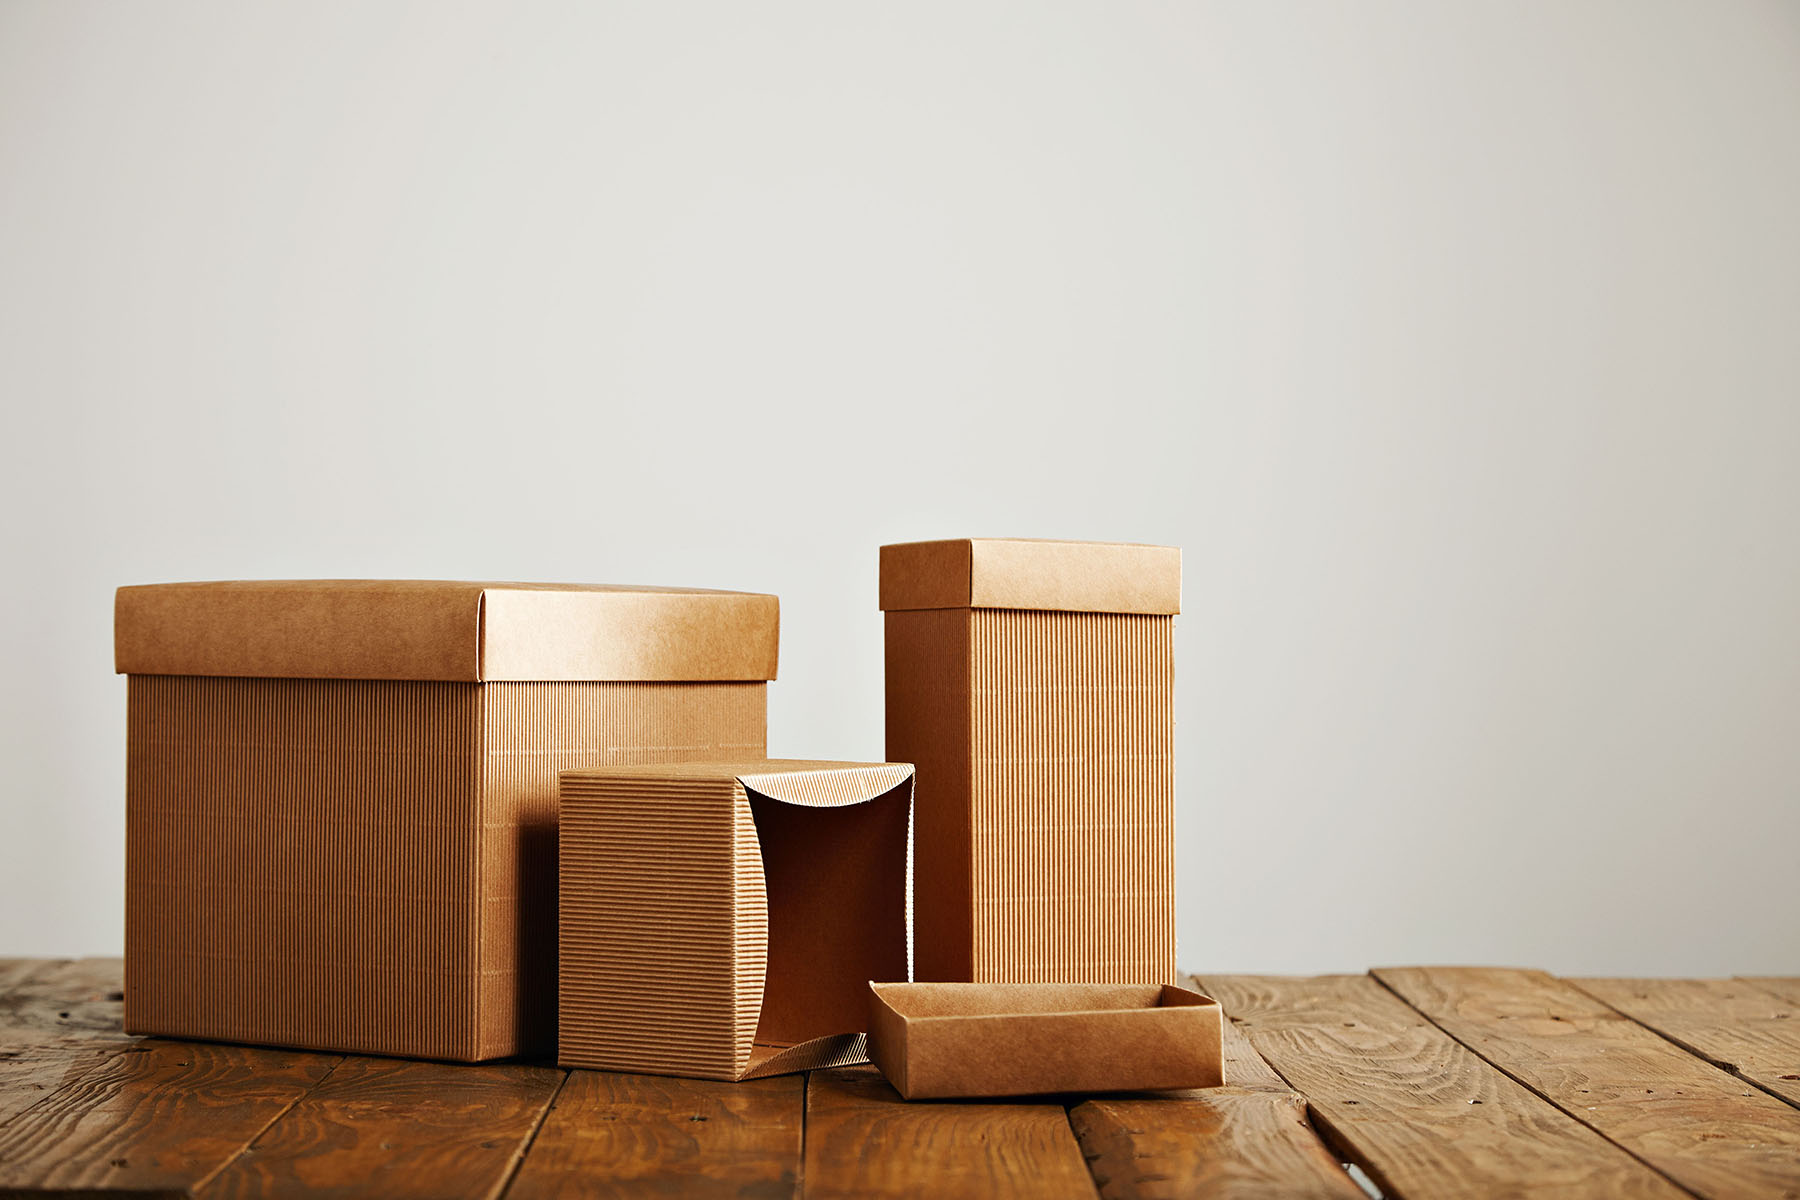 Unlabeled similar boxes of different shapes and sizes on an uneven wooden table isolated on white